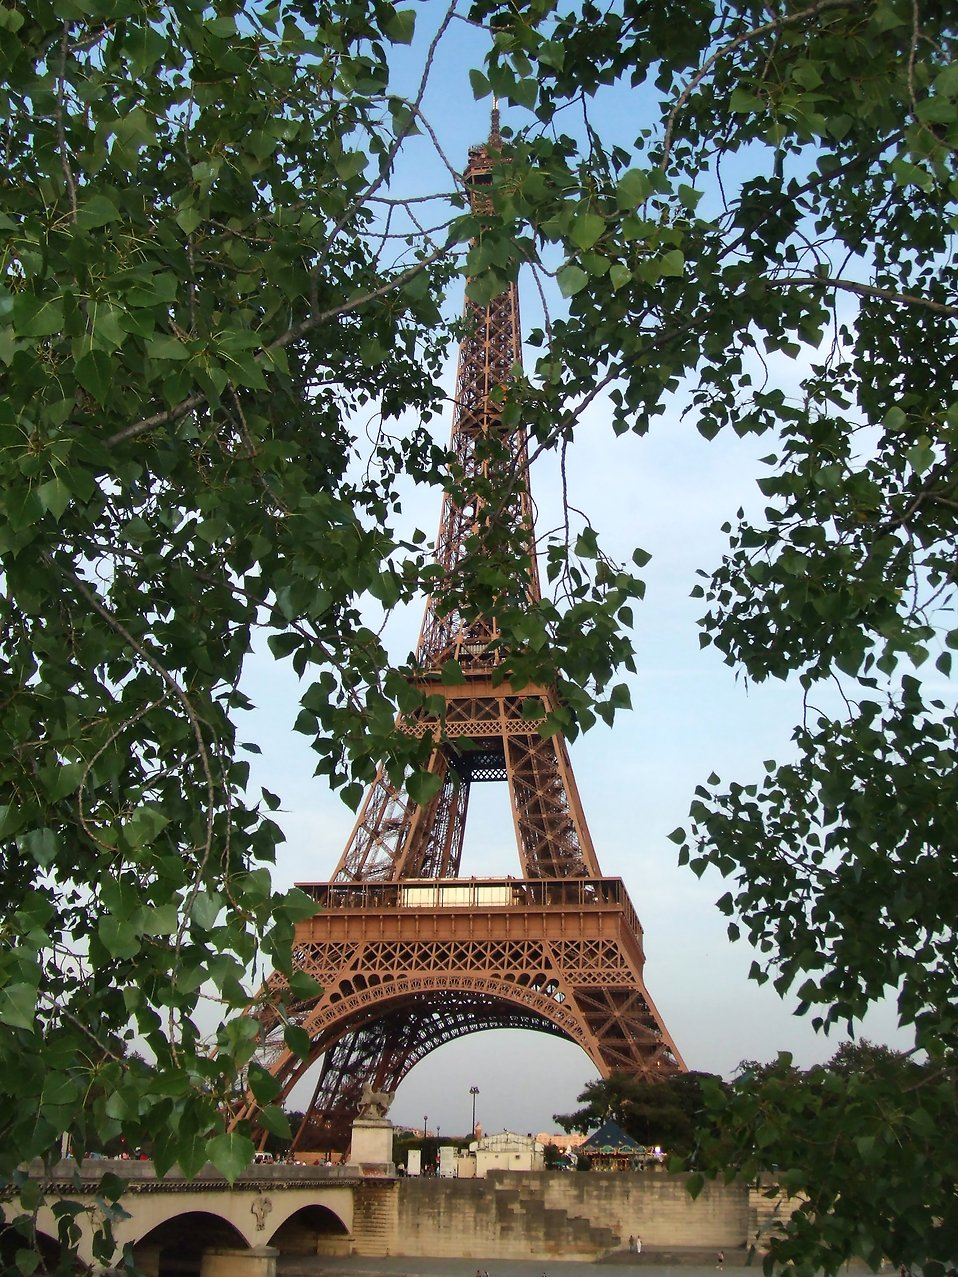 Free Stock Photo: The Eiffel Tower